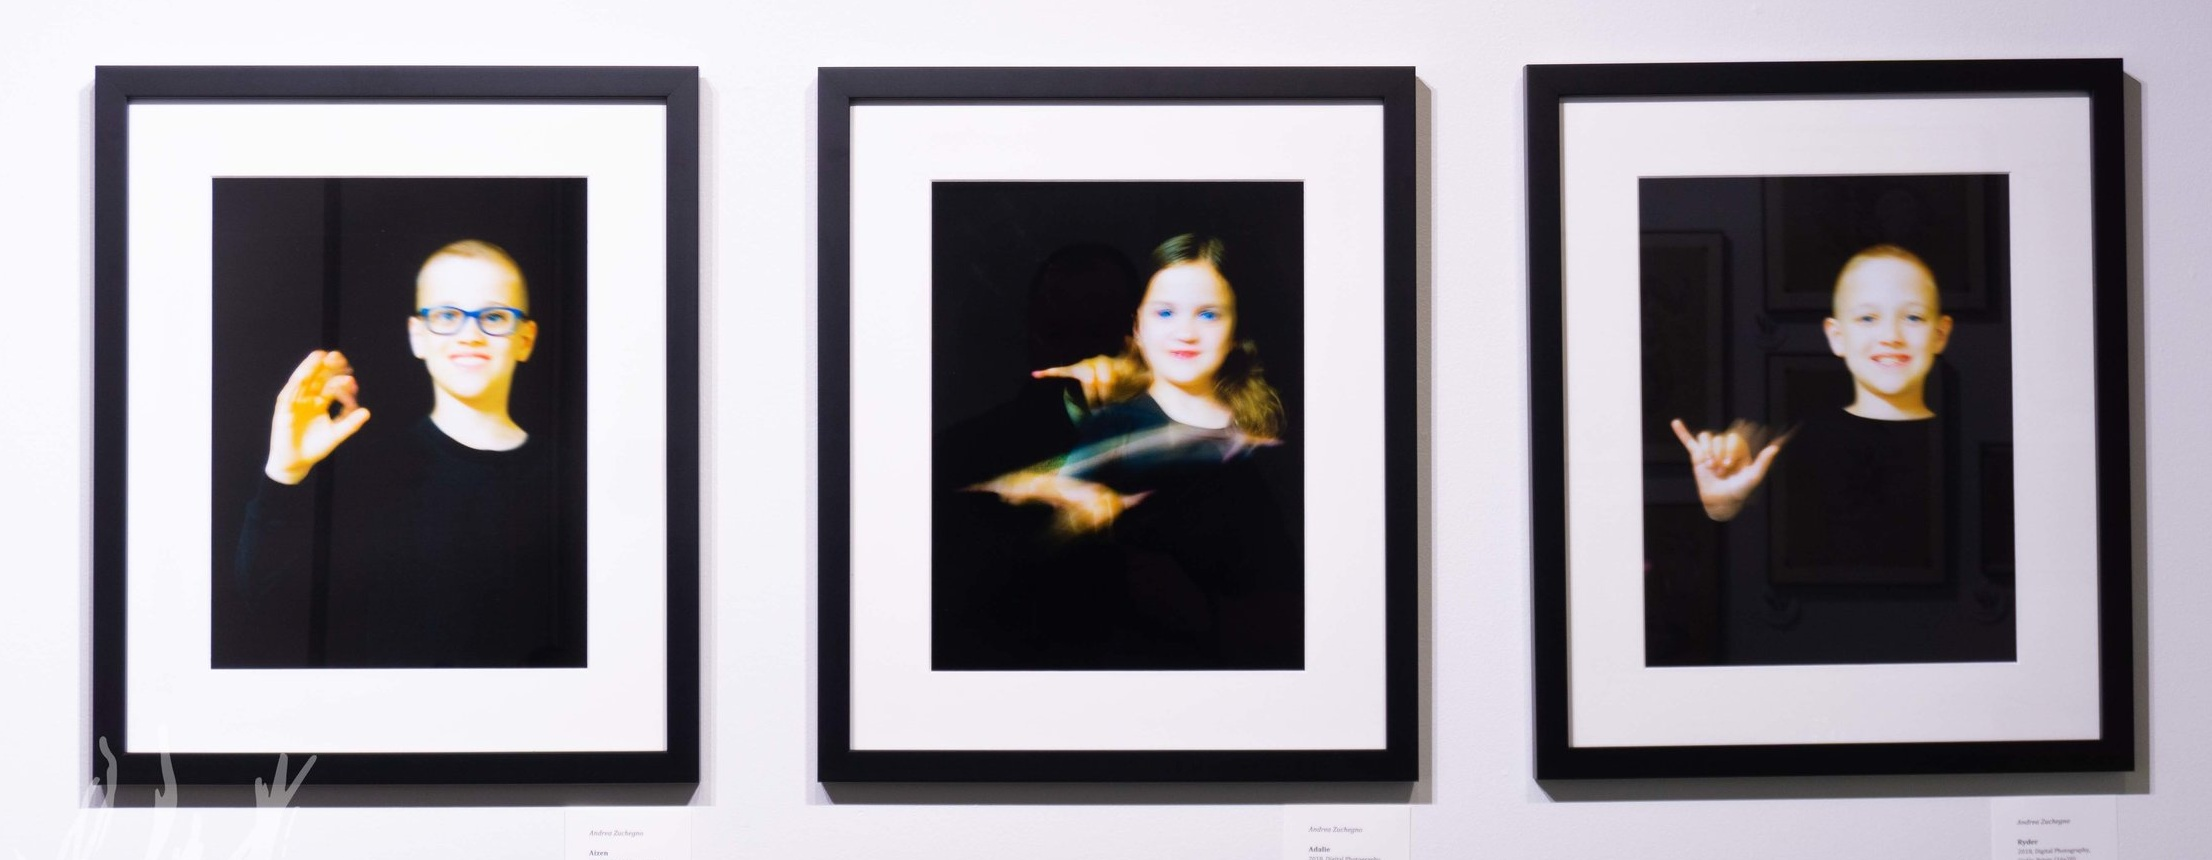 A photographic triptych by Andrea Zuchegno featuring her children's name signs.